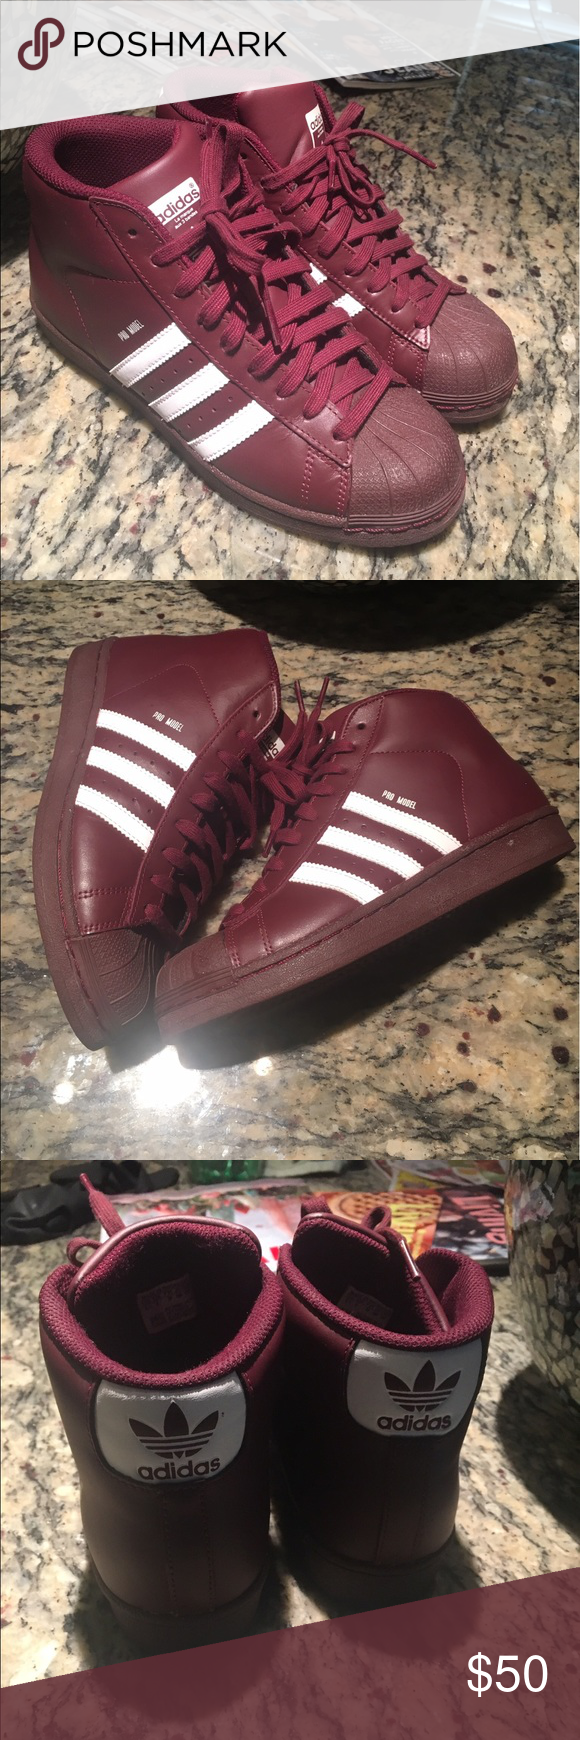 914f1 be4db womens adidas pro model burgundy grade school amazing price -  newsbdonline.com 28e9283590